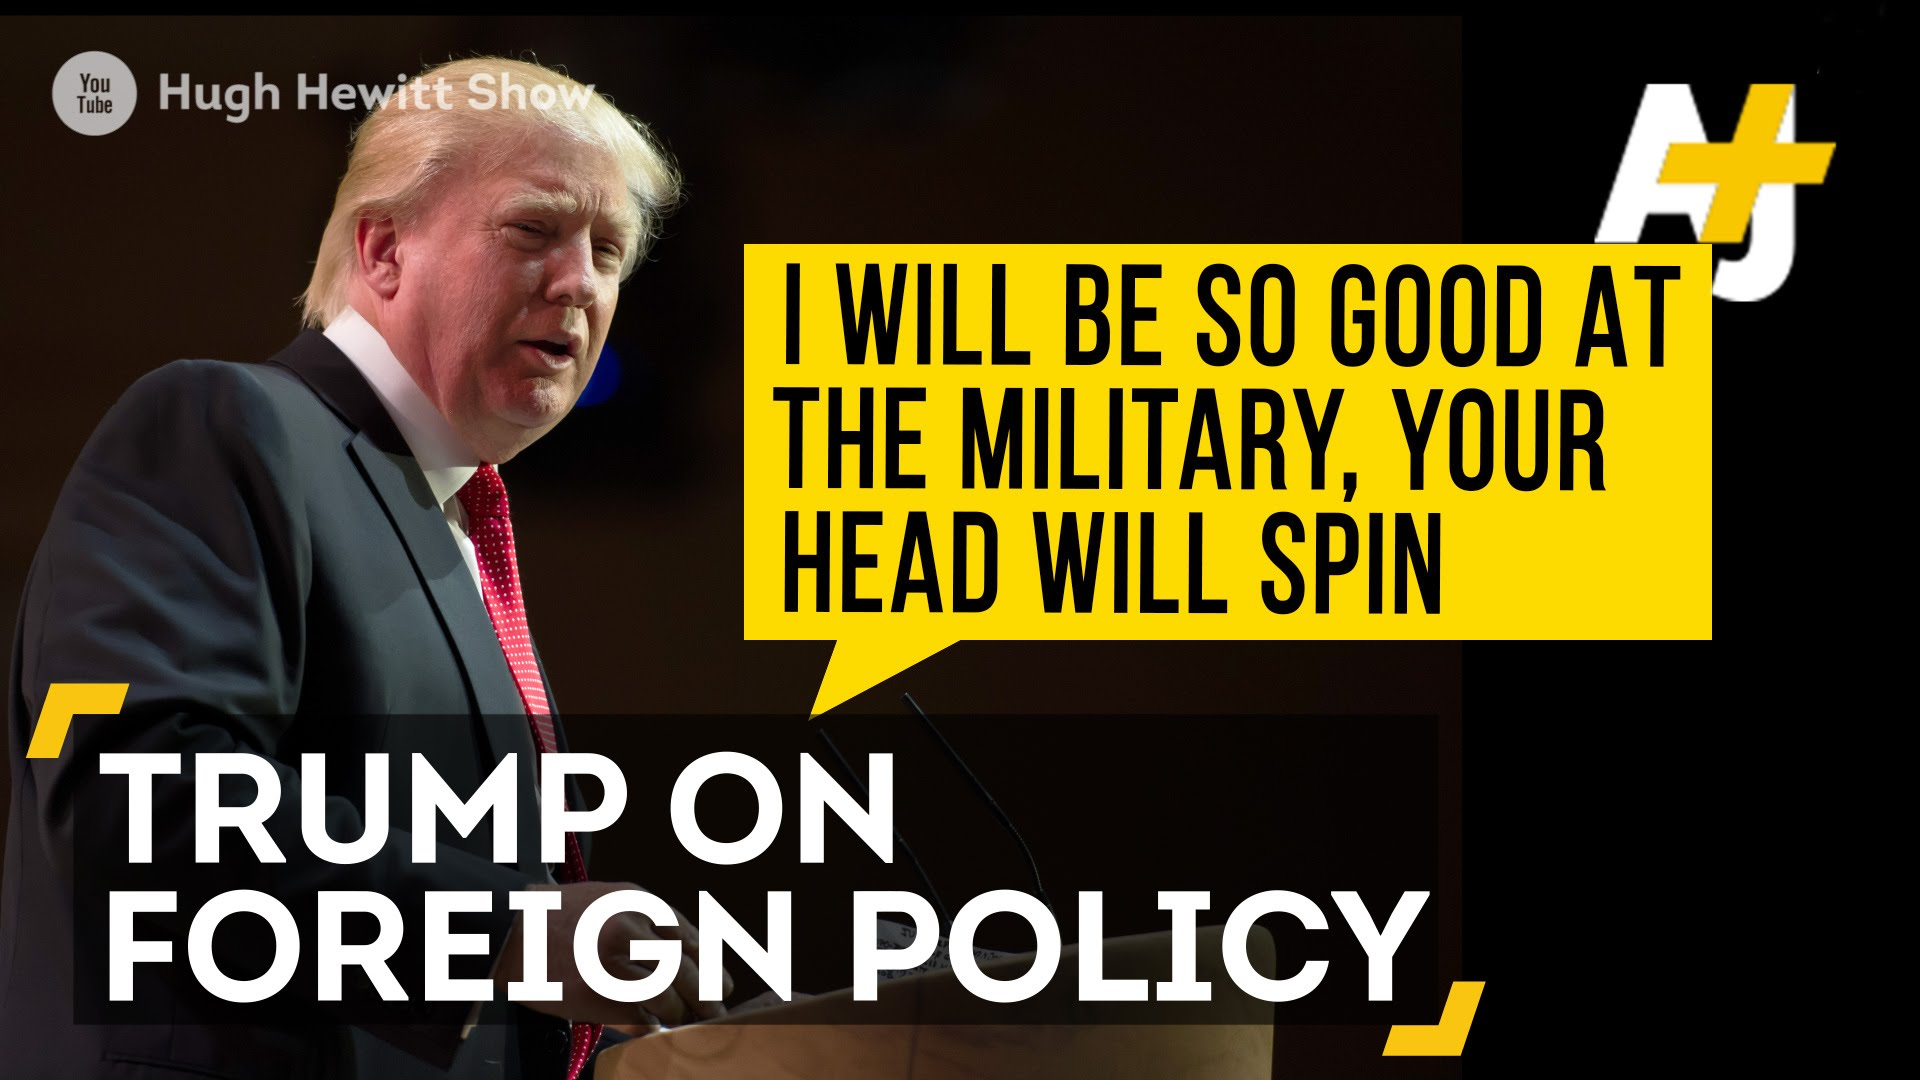 donald trump foreign policy time 2016 images